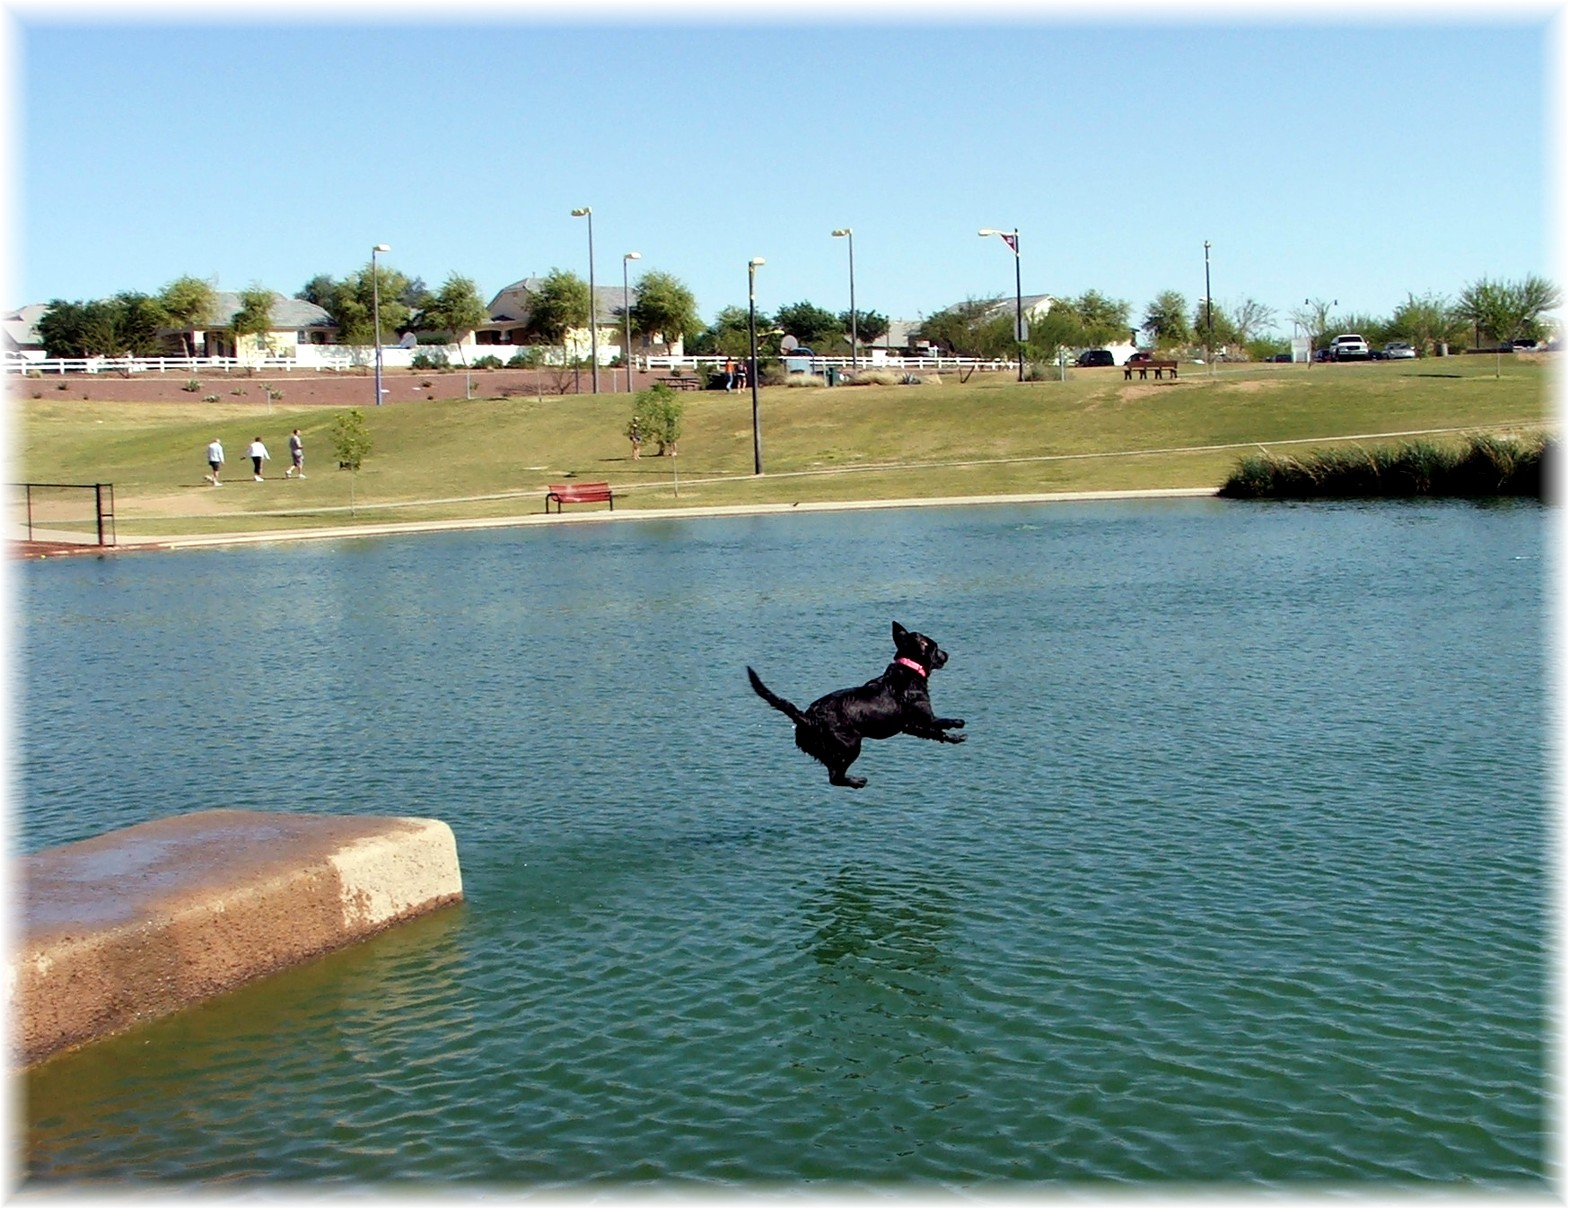 dog-jumping-into-water